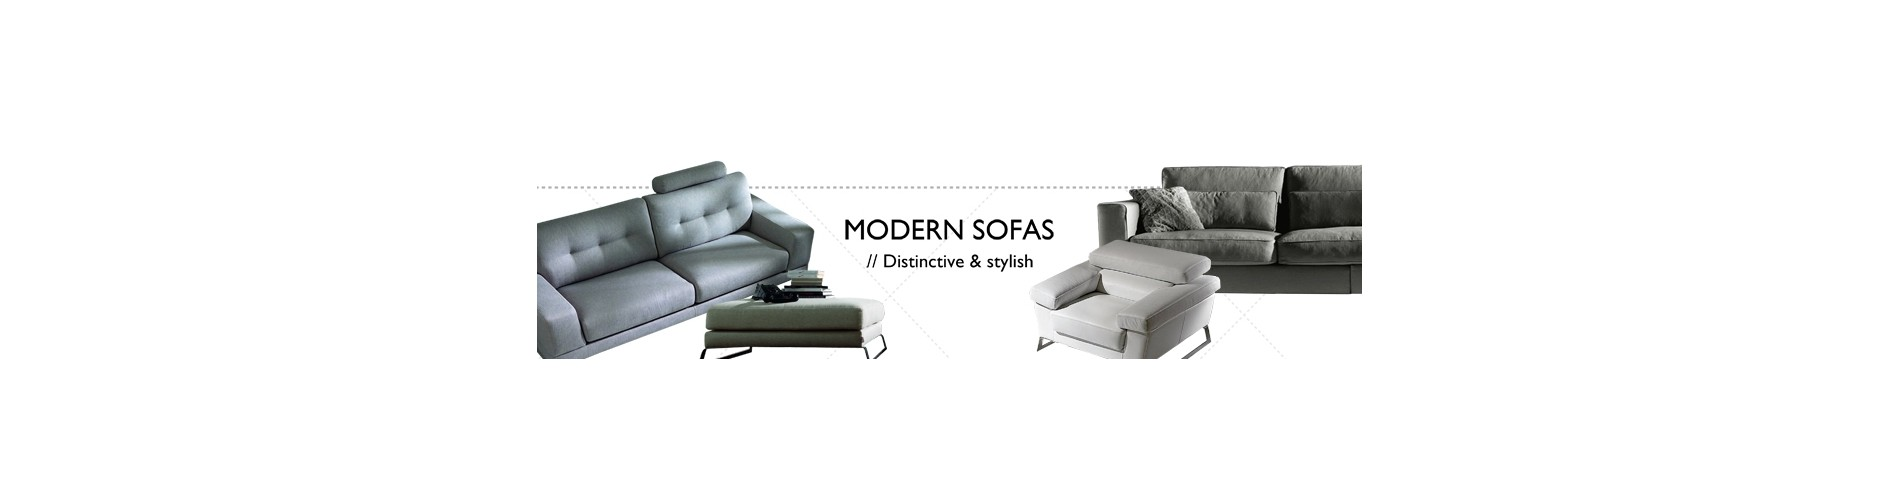 Modern Sofa Sets 2 3 4 Or 5 Seat Sofas With Armchairs